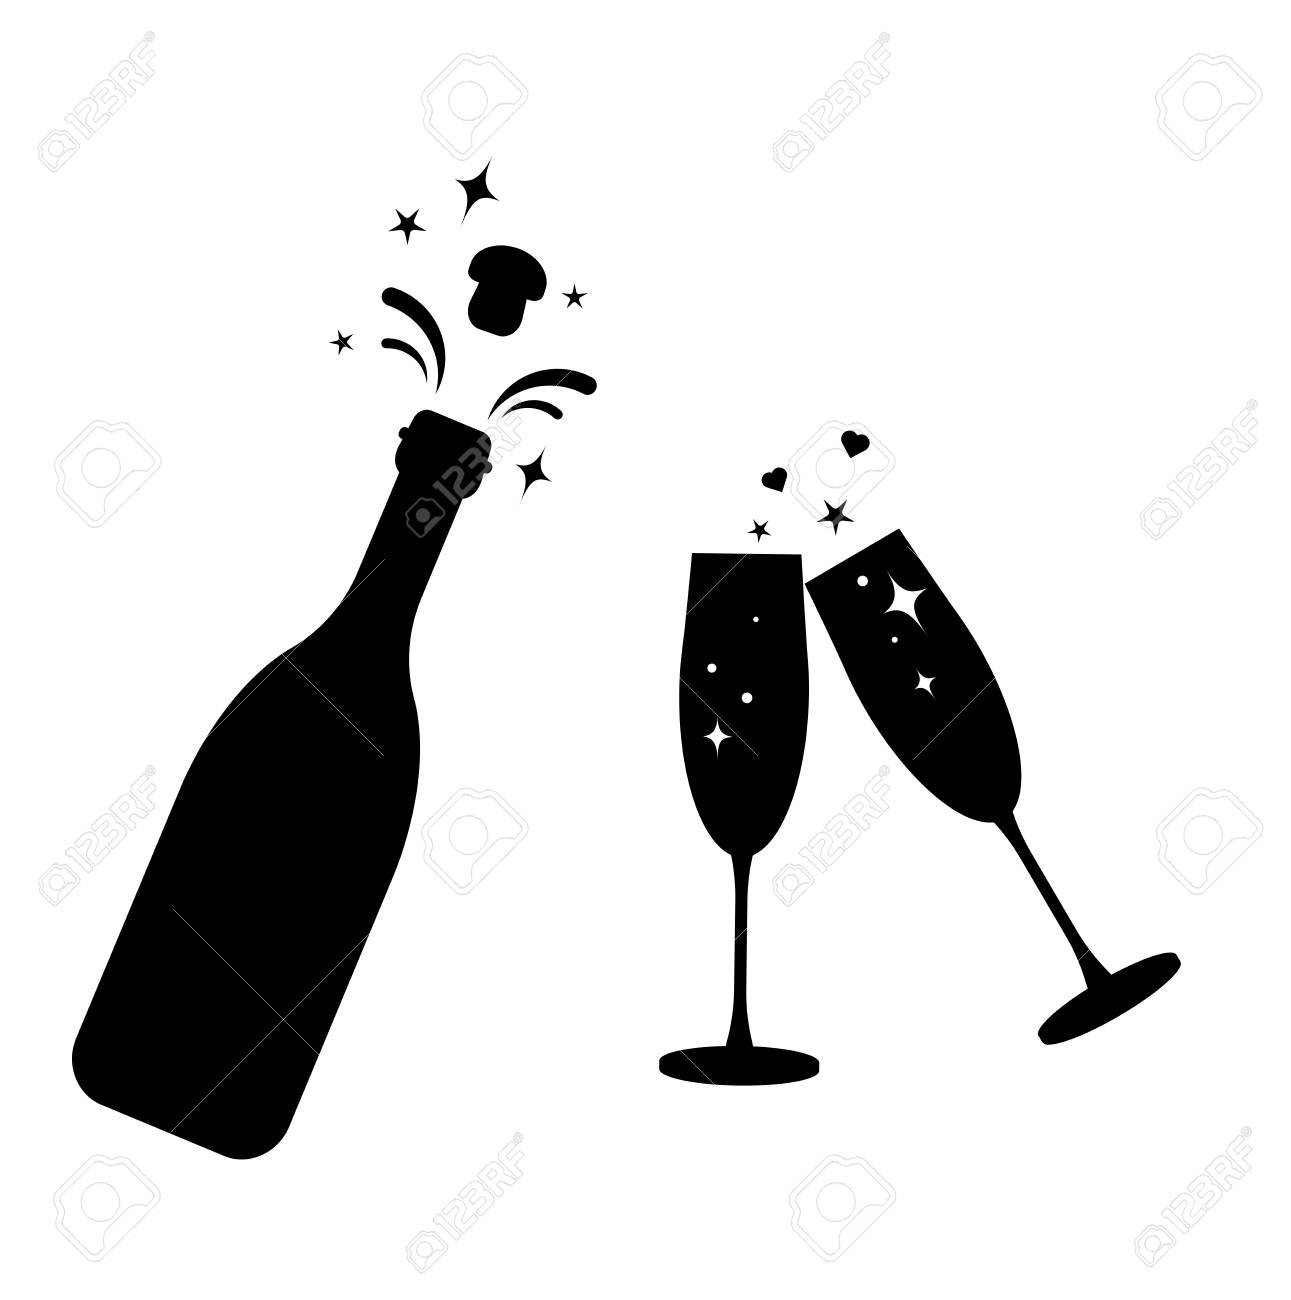 Champagne bottle vector glass icon. Bottle and two glasses black silhouette icons. - 99217953